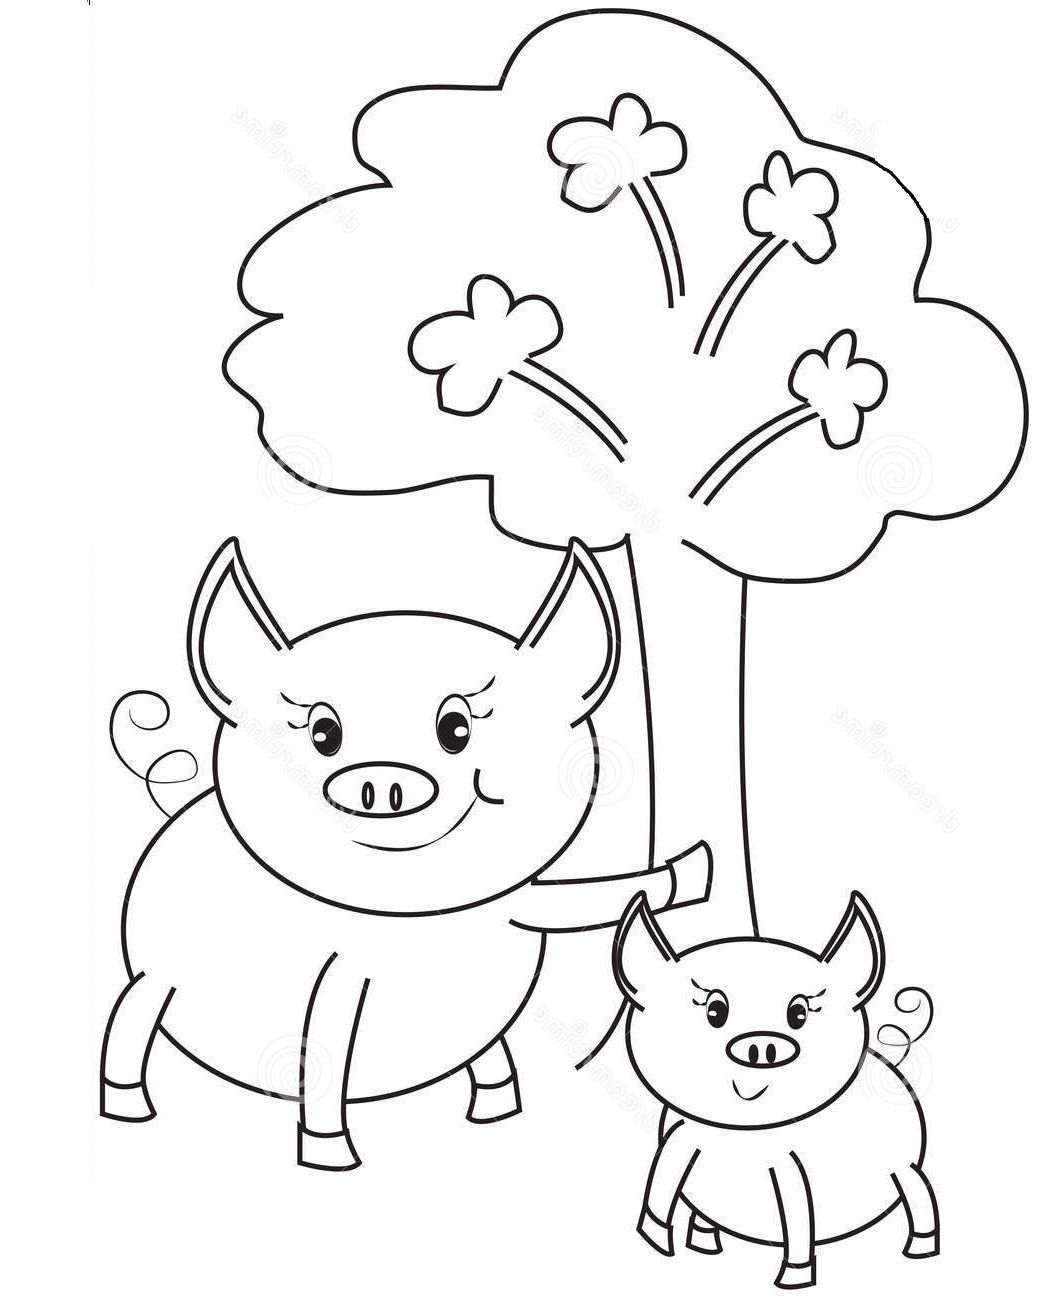 Happy Pig Playing Coloring Pages For Kids E7a Printable Pigs Coloring Pages For Kids